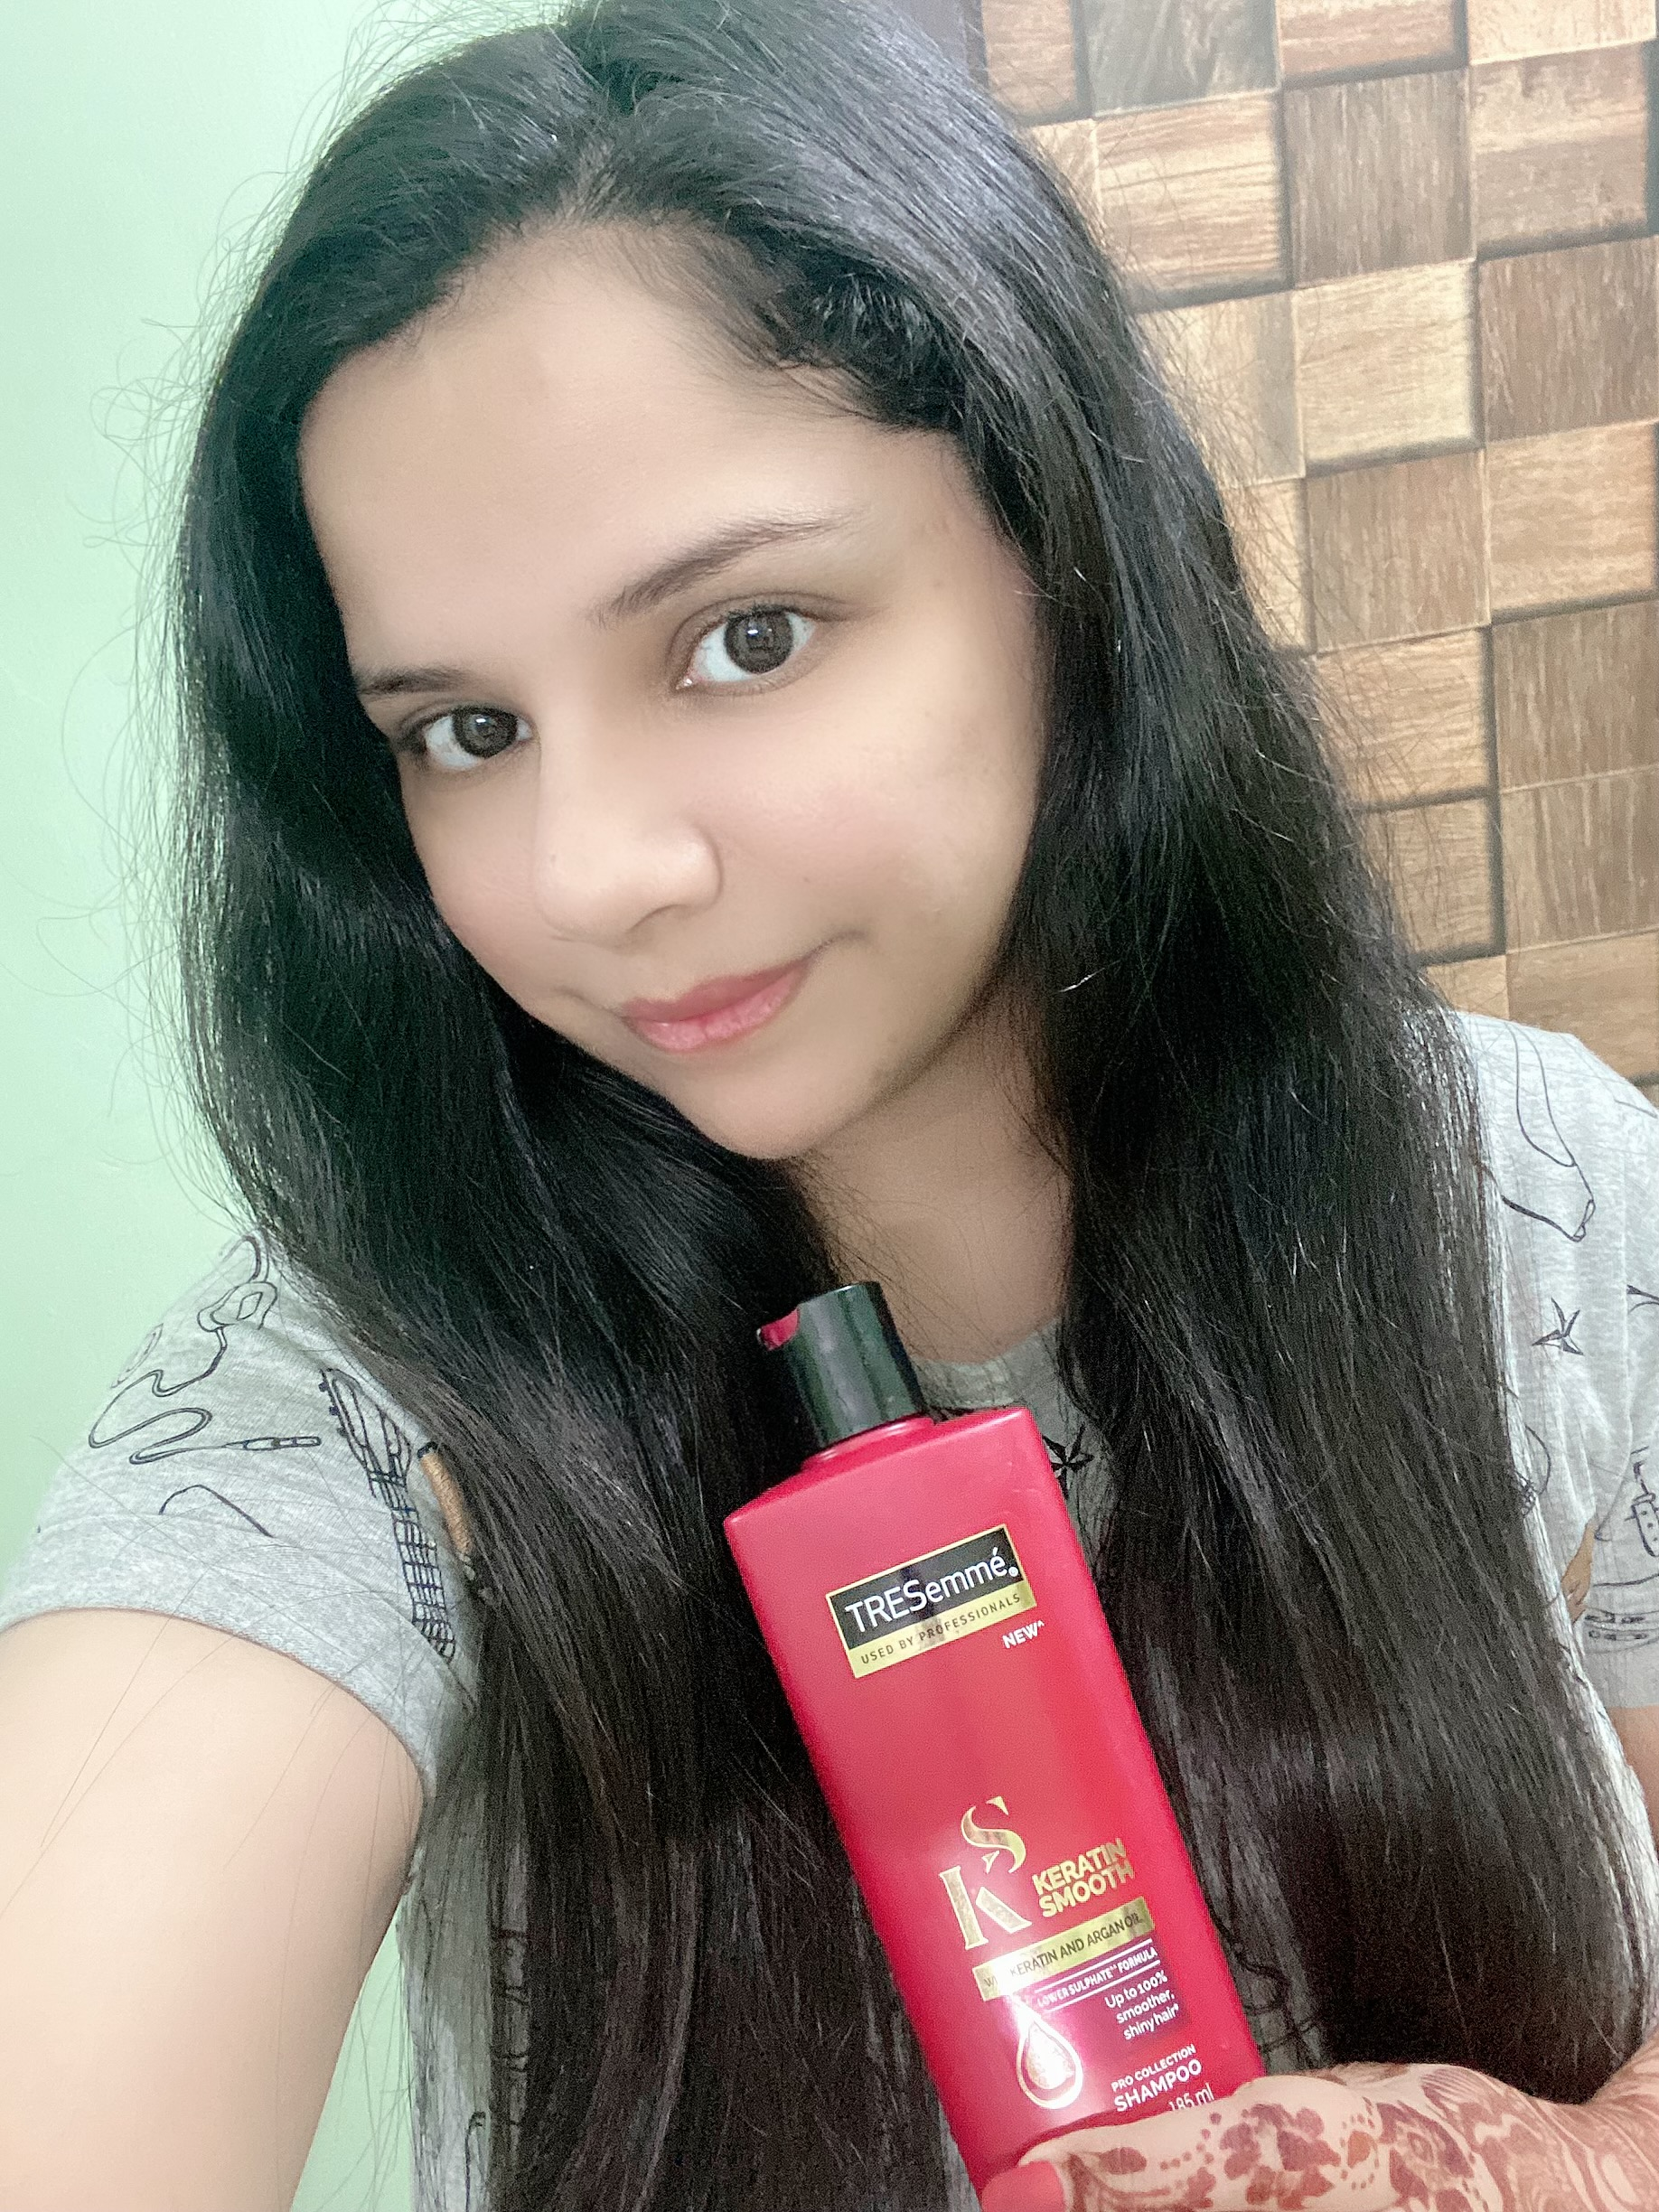 Tresemme Keratin Smooth Infusing Shampoo-Best as always-By megha19